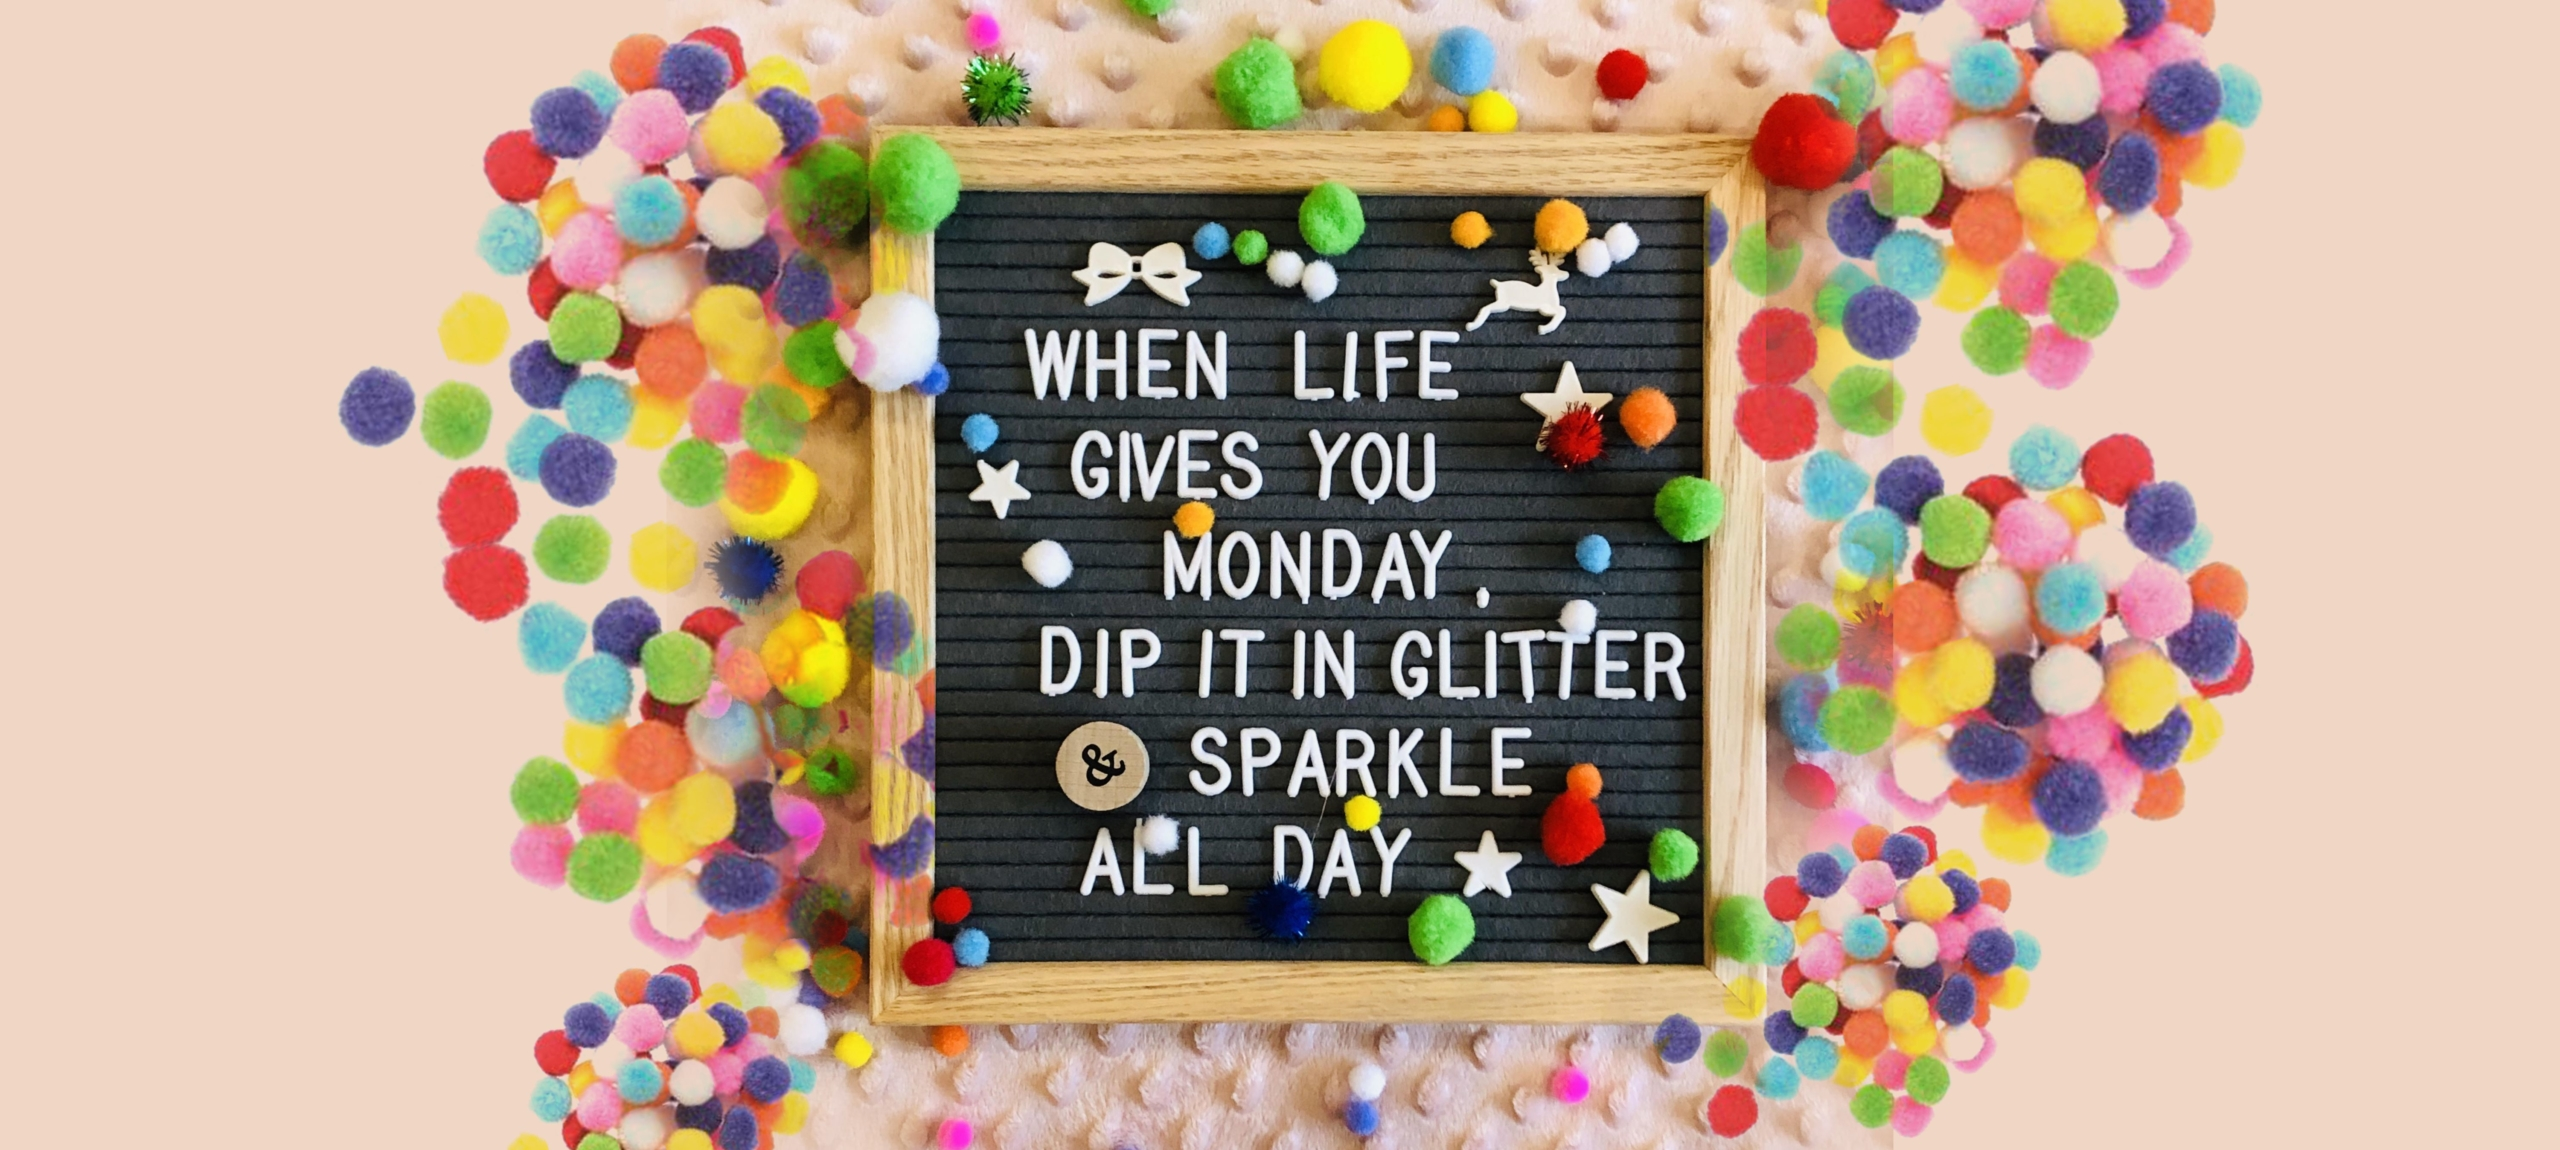 When life gives you monday, dip it in glitter